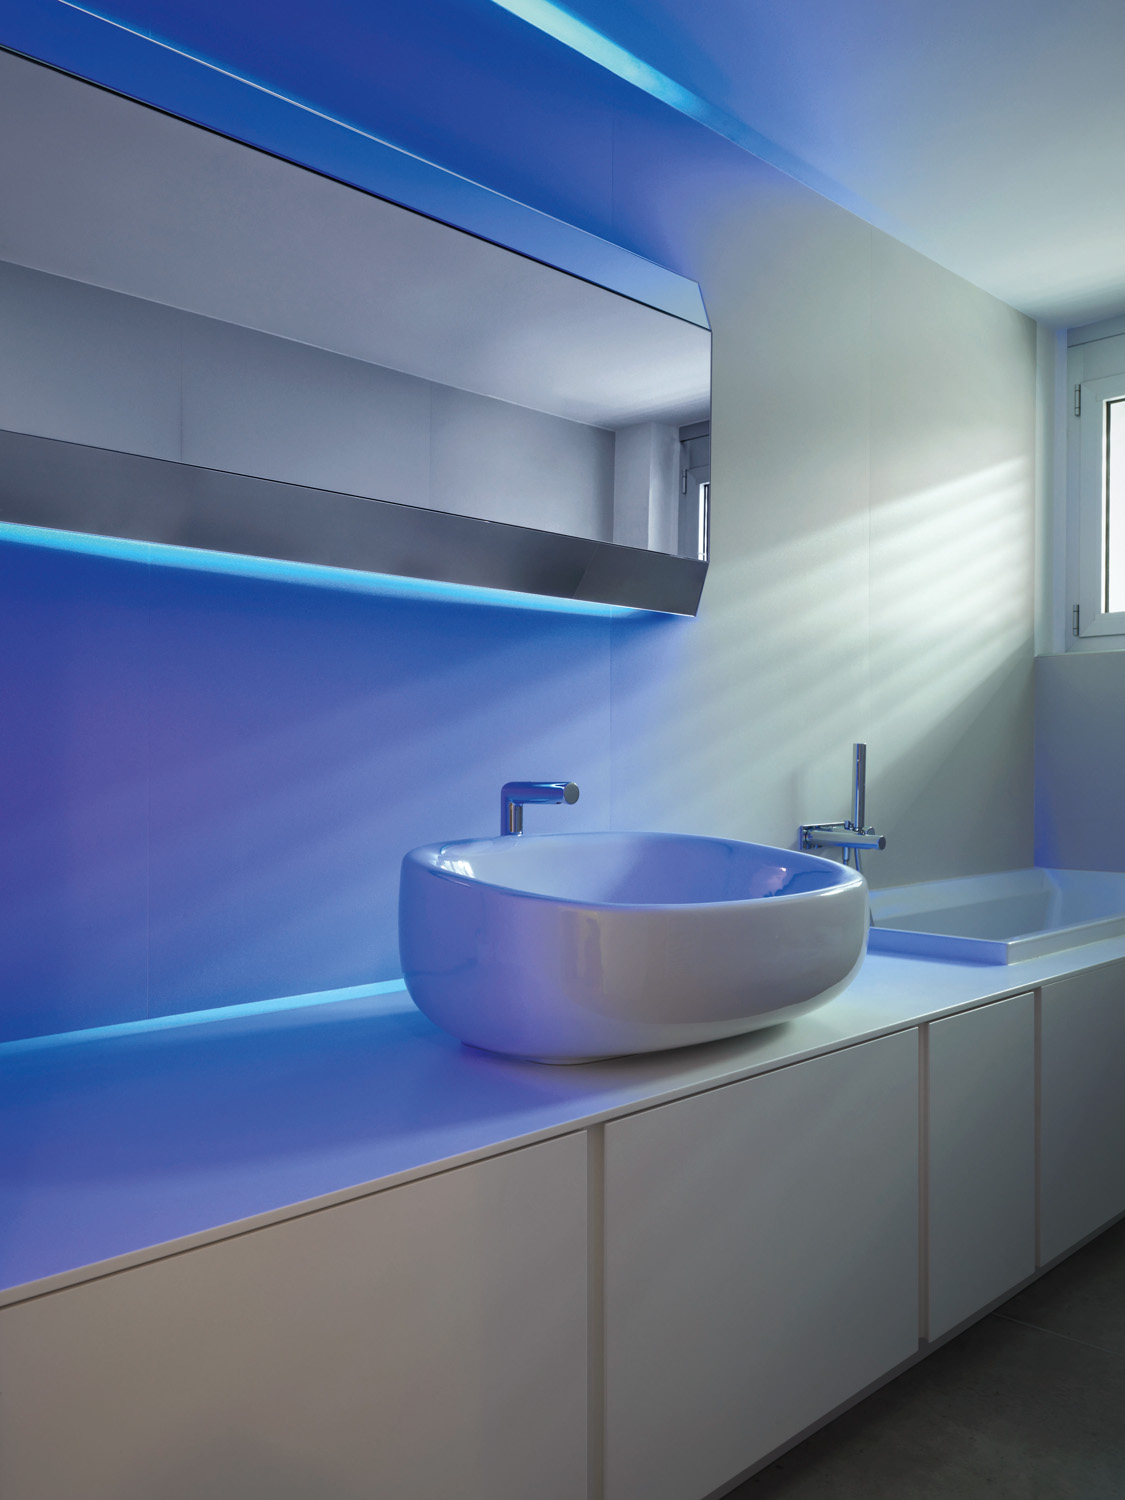 Blue reigns supreme in the bathroom